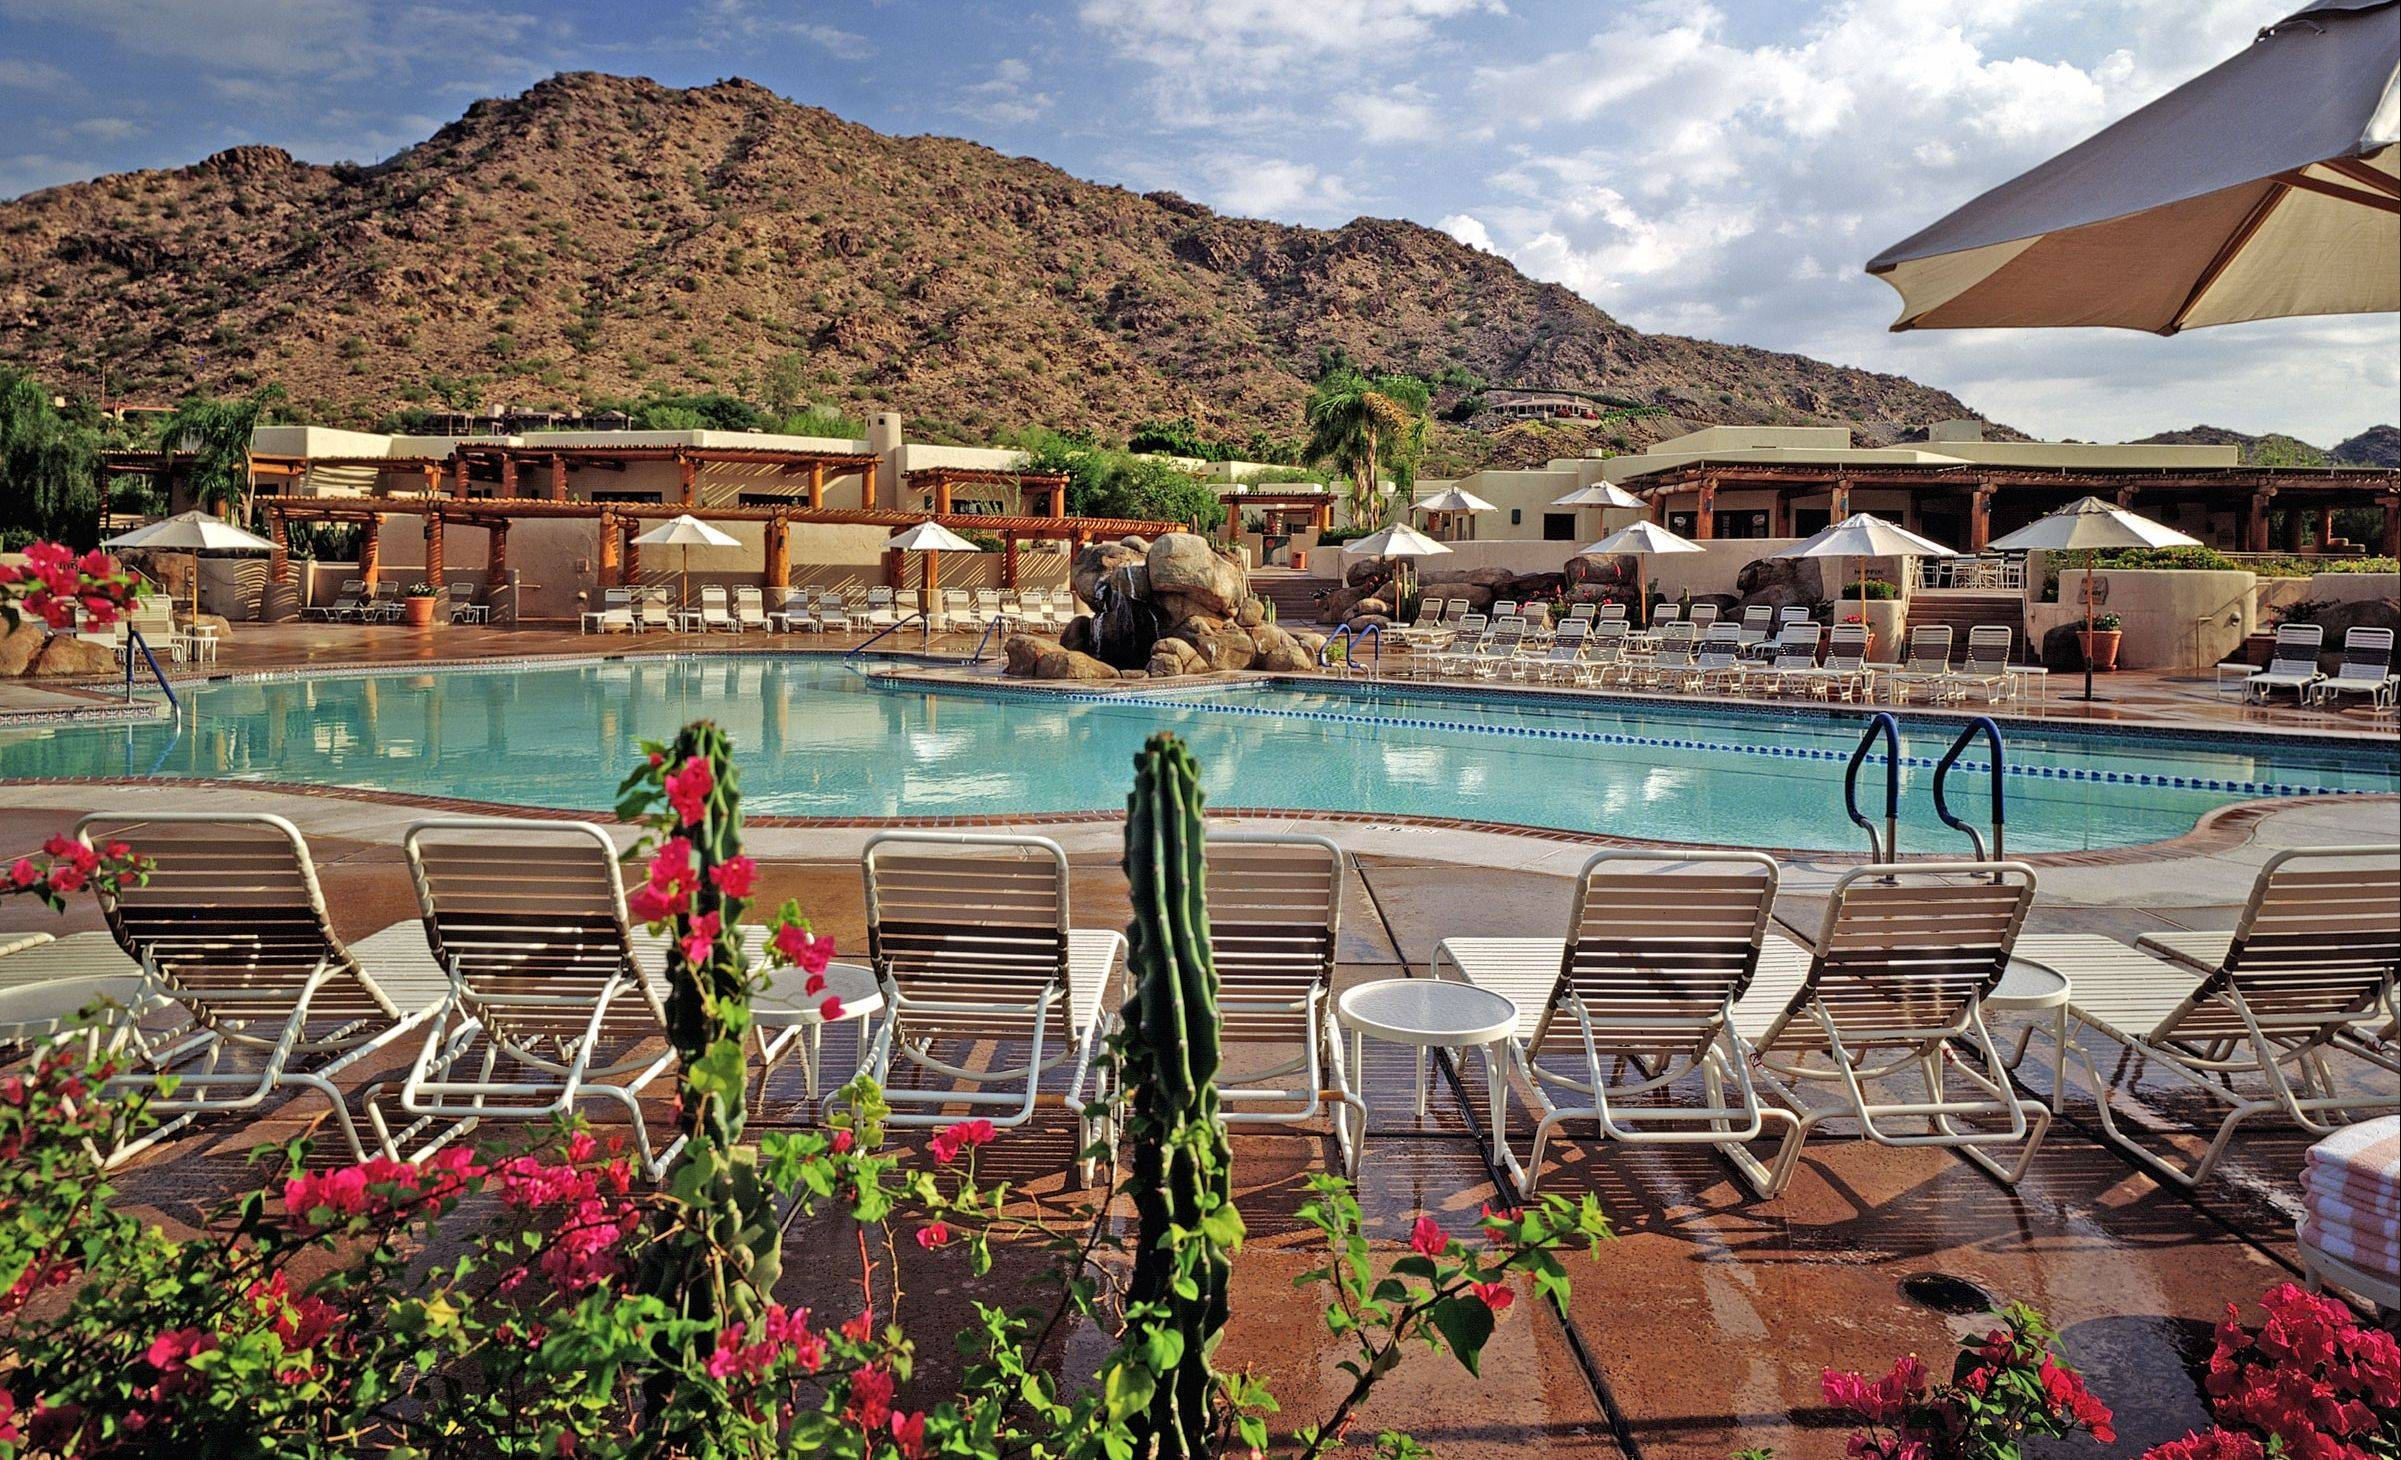 The Jack Rabbit pool at the JW Marriott Camelback Inn Resort & Spa in Scottsdale, Ariz., is a popular place to cool off.